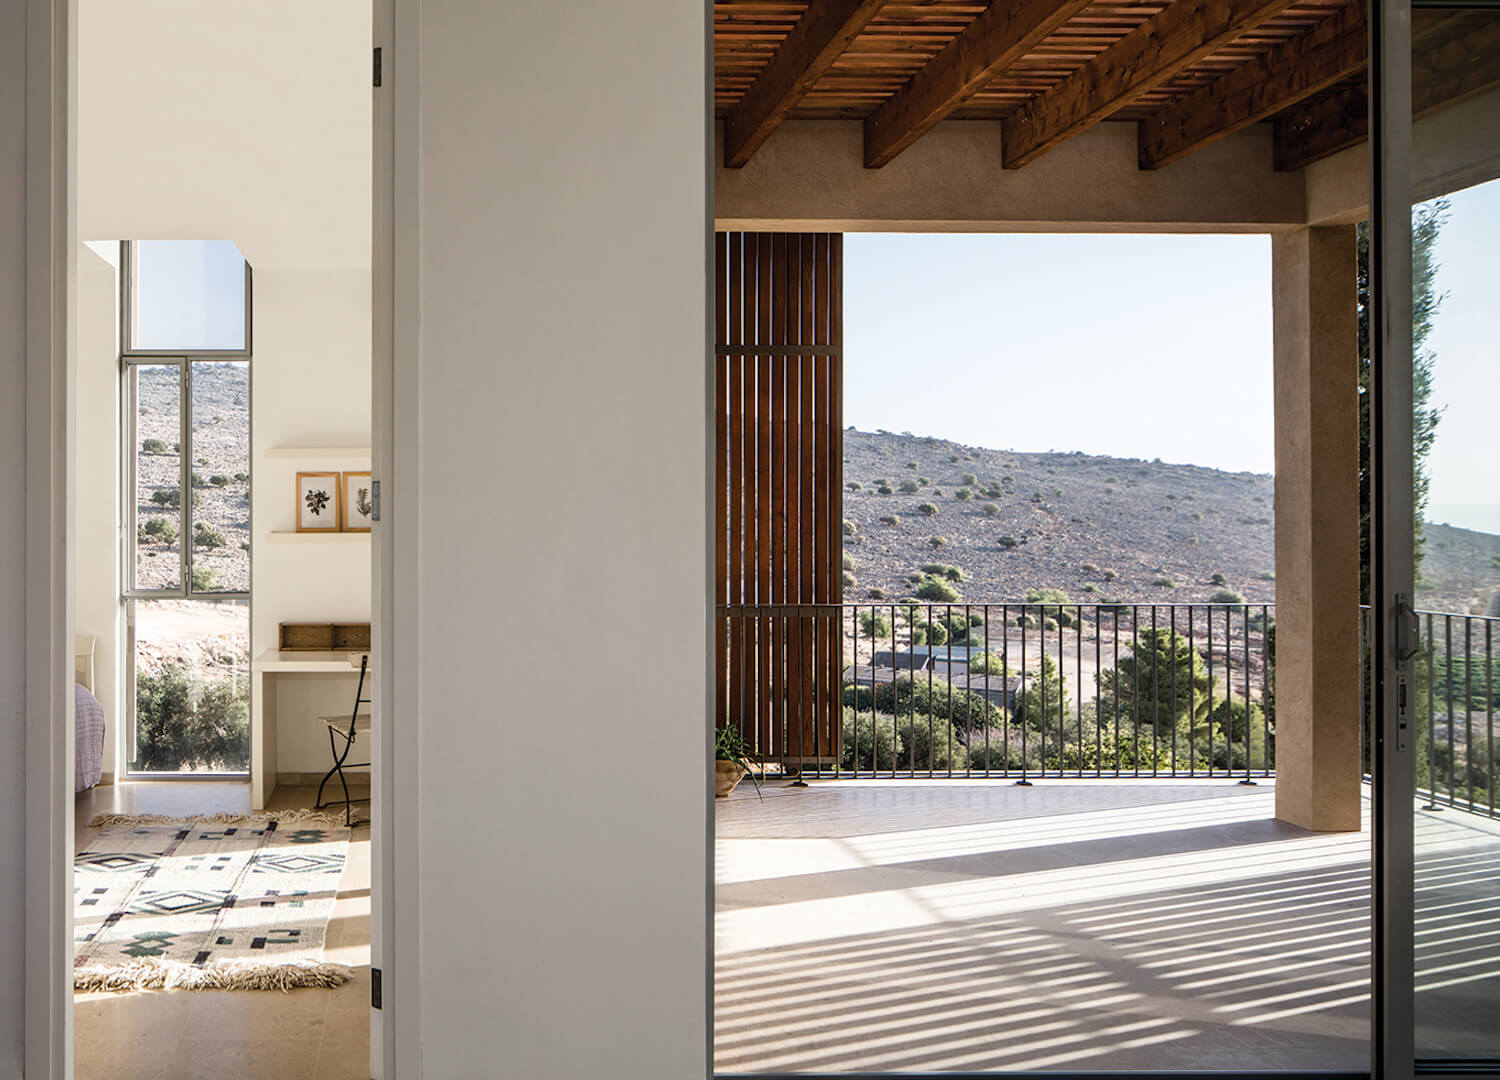 est living global interiors 43 Golany Architects Residence in the Galilee Amit Geron